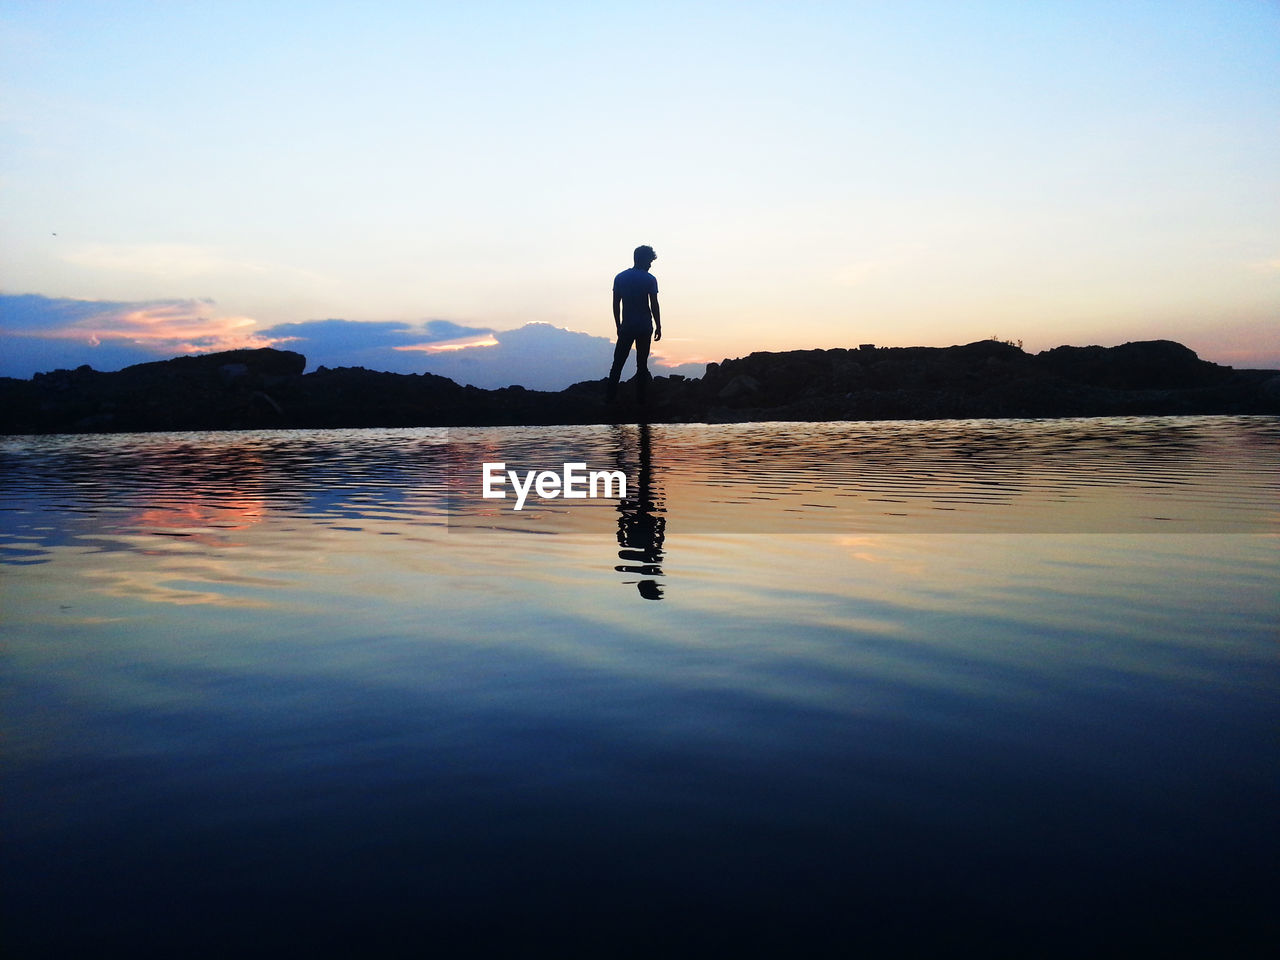 full length, sunset, one person, reflection, real people, tranquil scene, water, silhouette, scenics, beauty in nature, nature, leisure activity, outdoors, lake, sky, tranquility, lifestyles, standing, clear sky, vacations, men, ankle deep in water, day, people